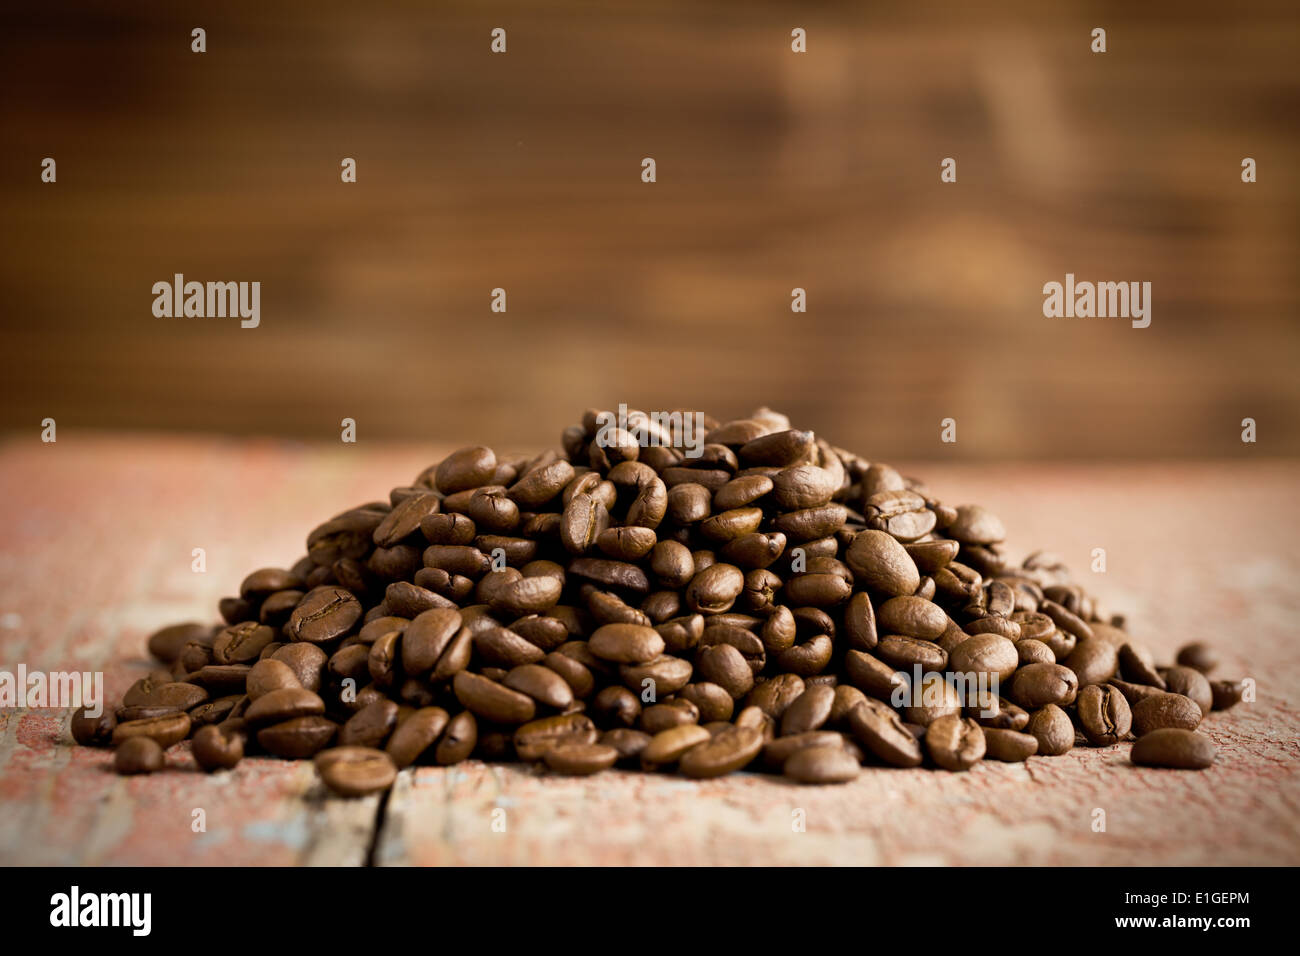 the heap of roasted coffee beans - Stock Image